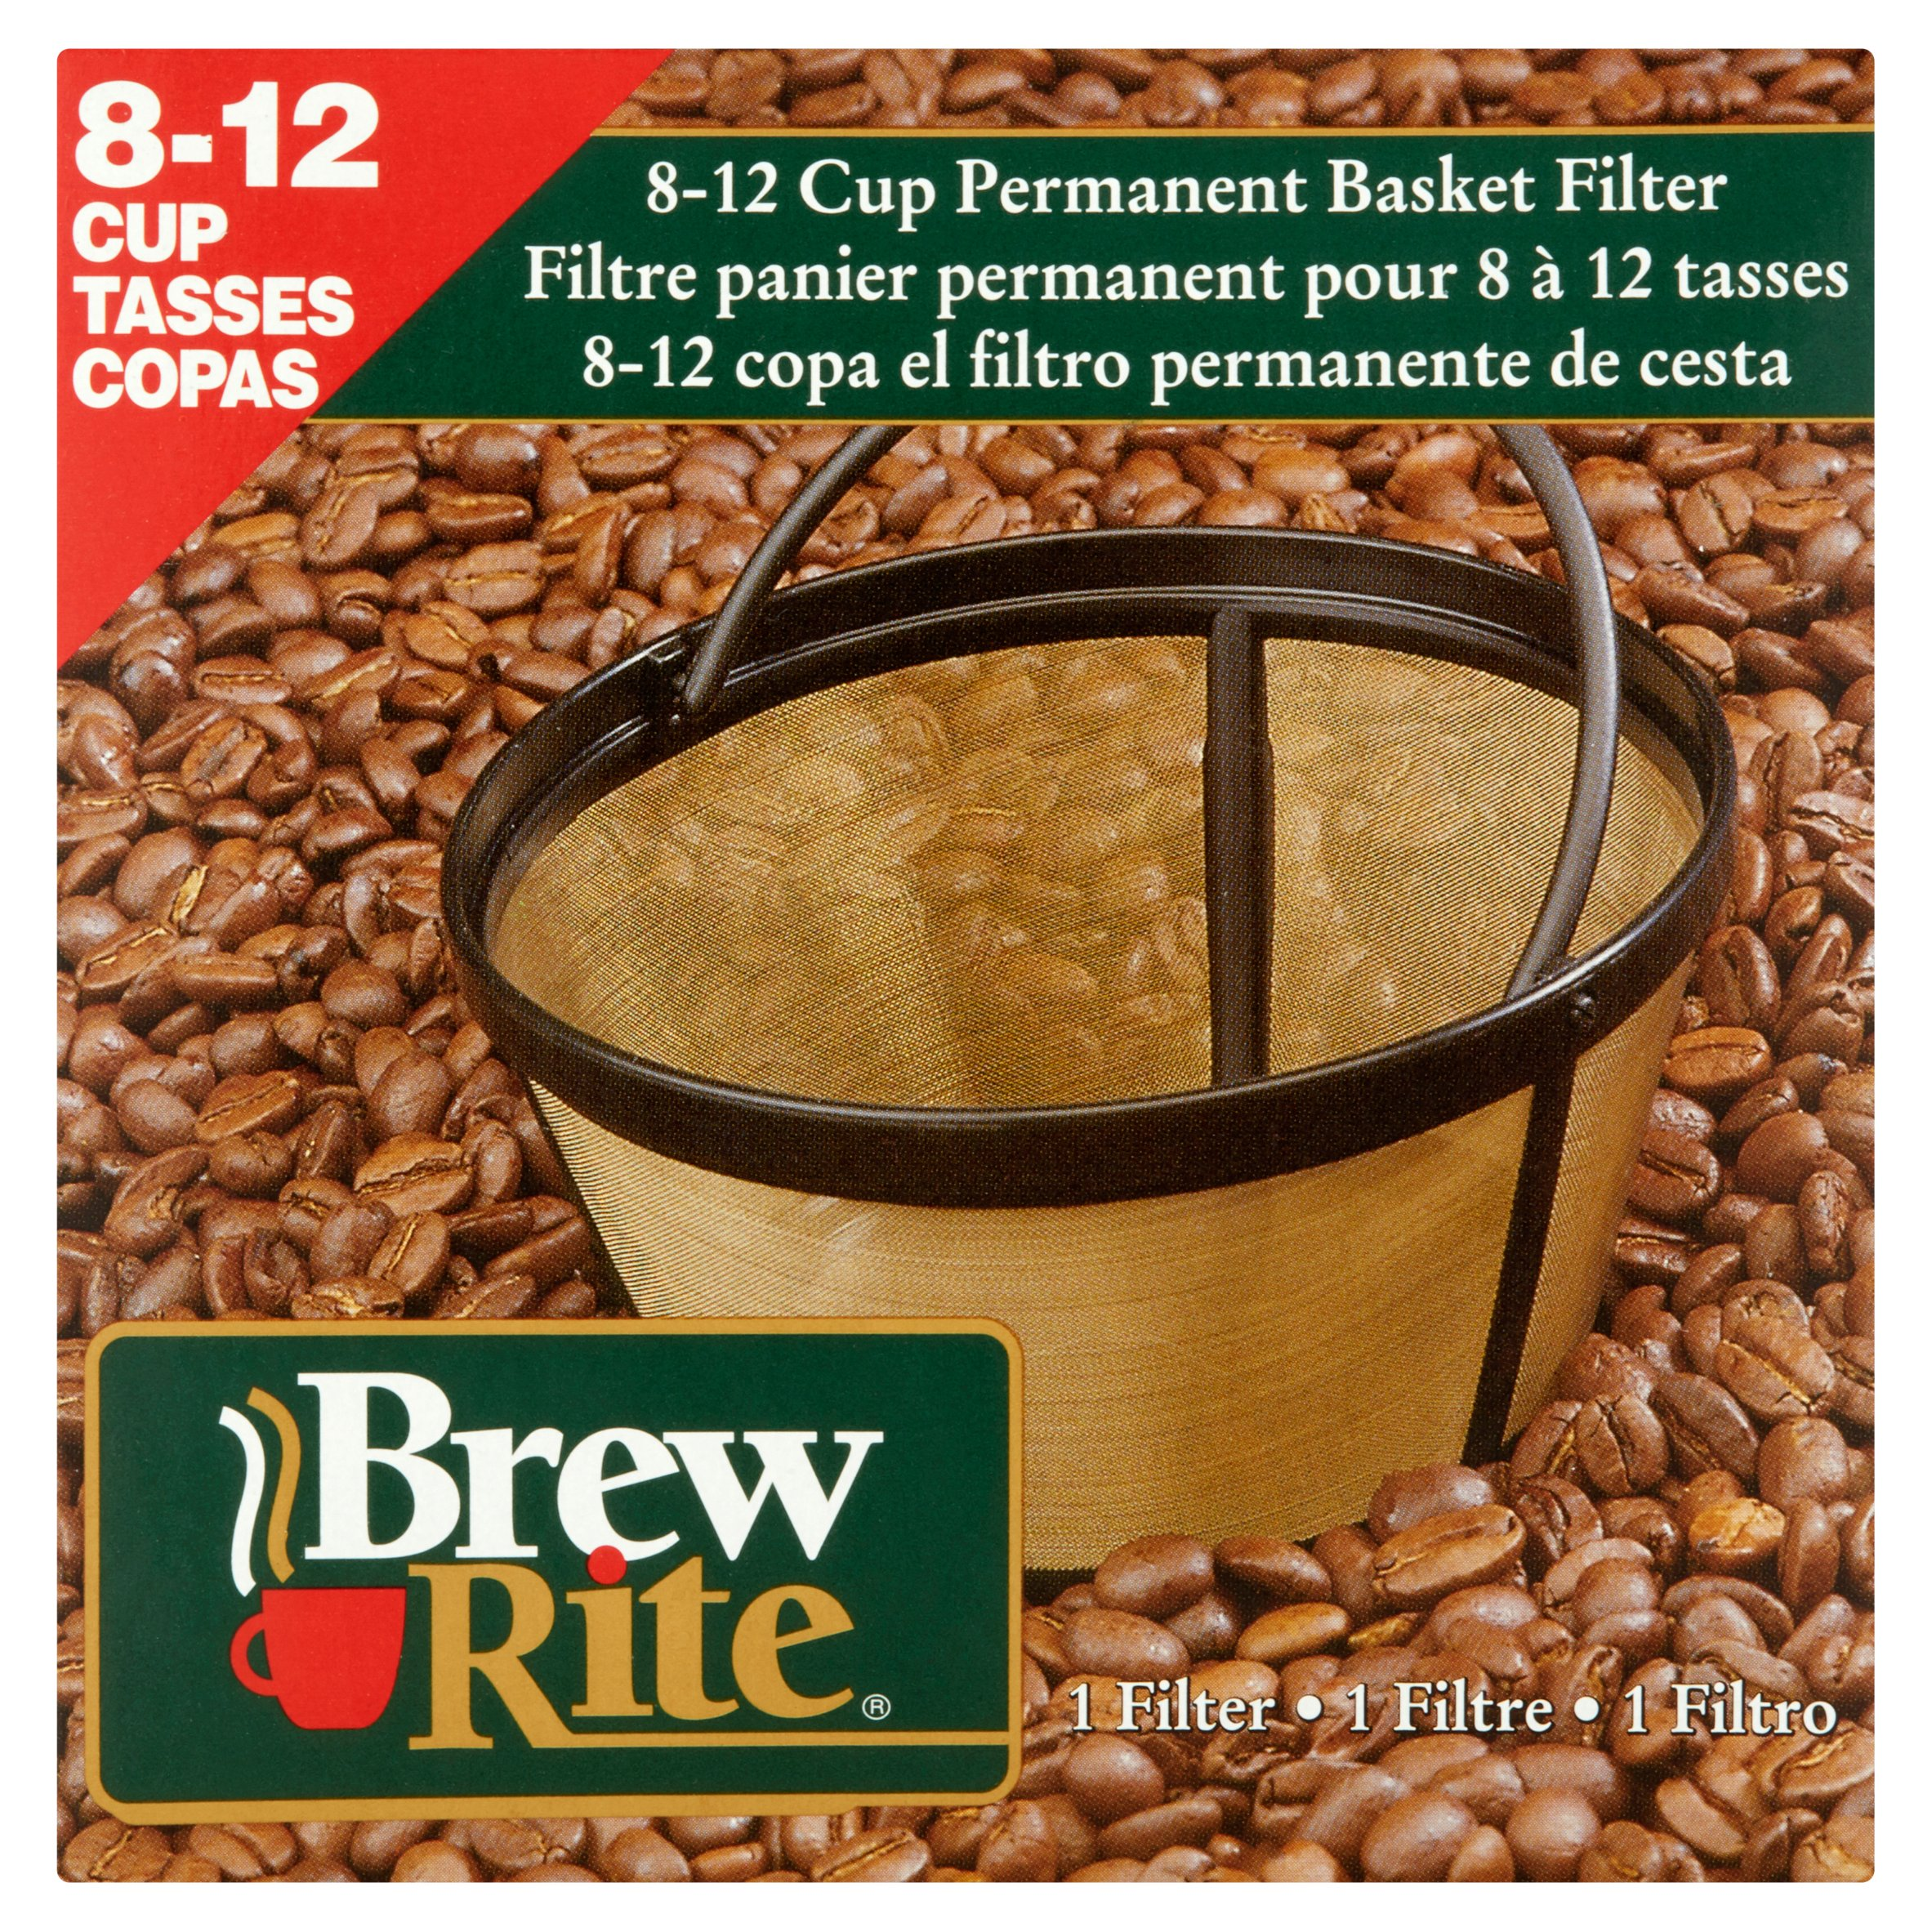 Brew Rite 8-12 Cup Permanent Coffee Filter, Basket Style G30010W/6